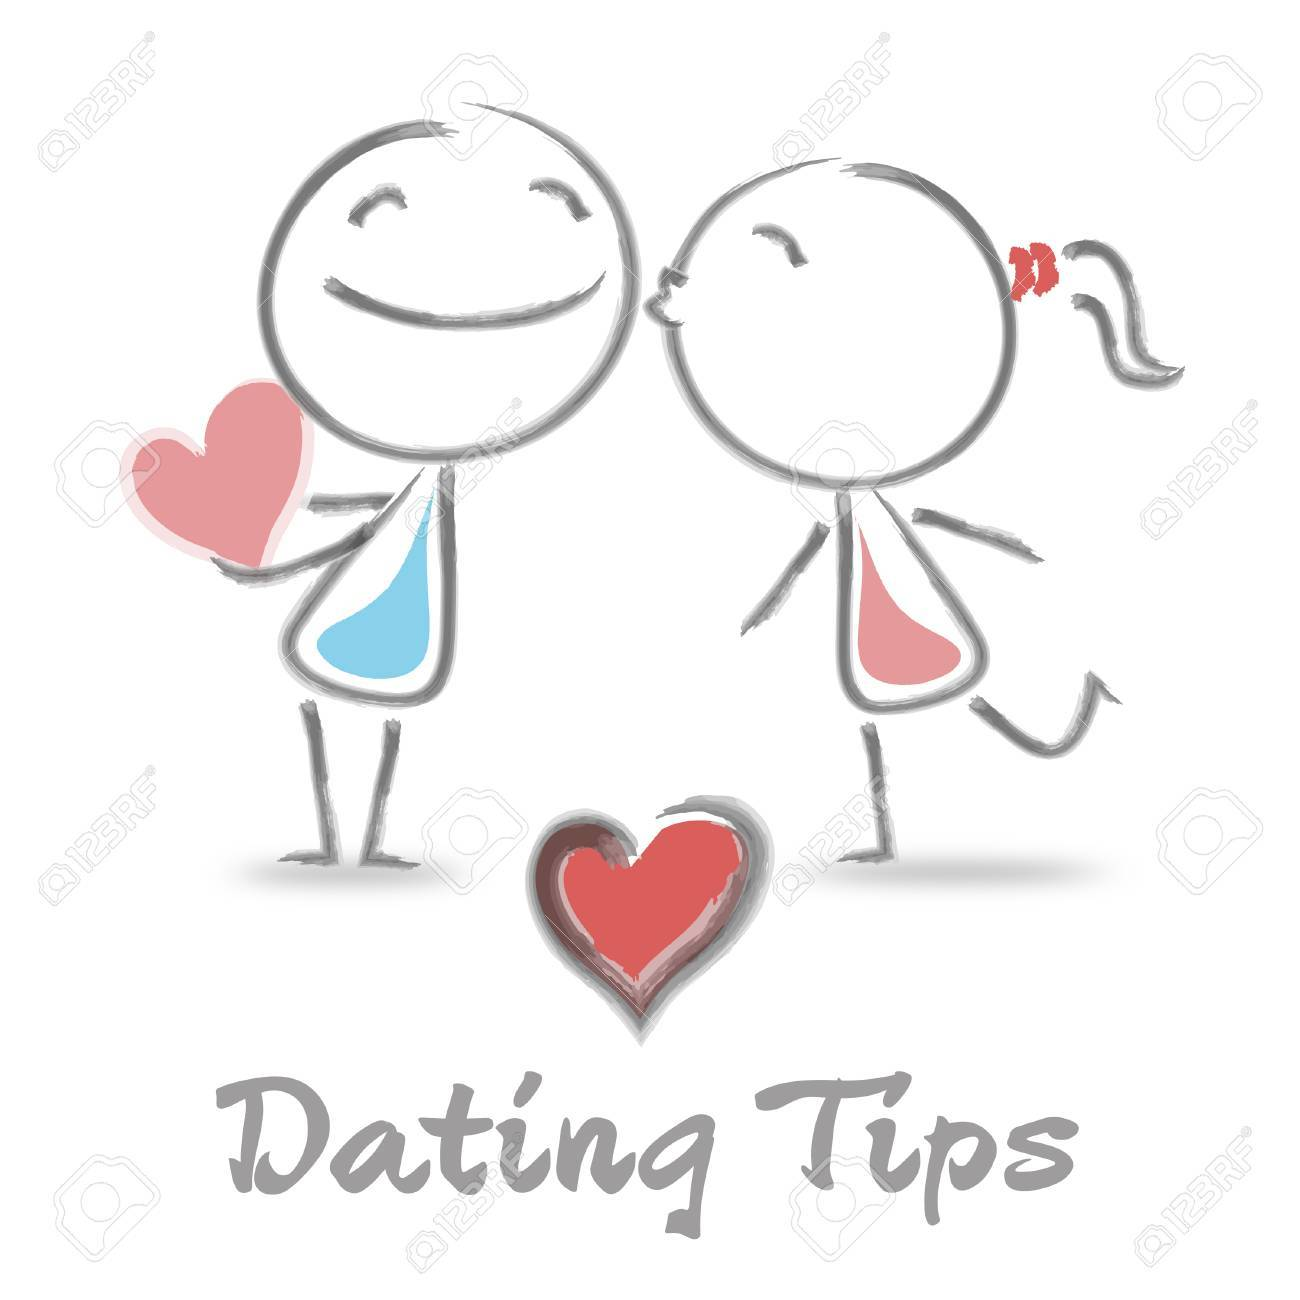 great dating tips and advice for women photos images clip art